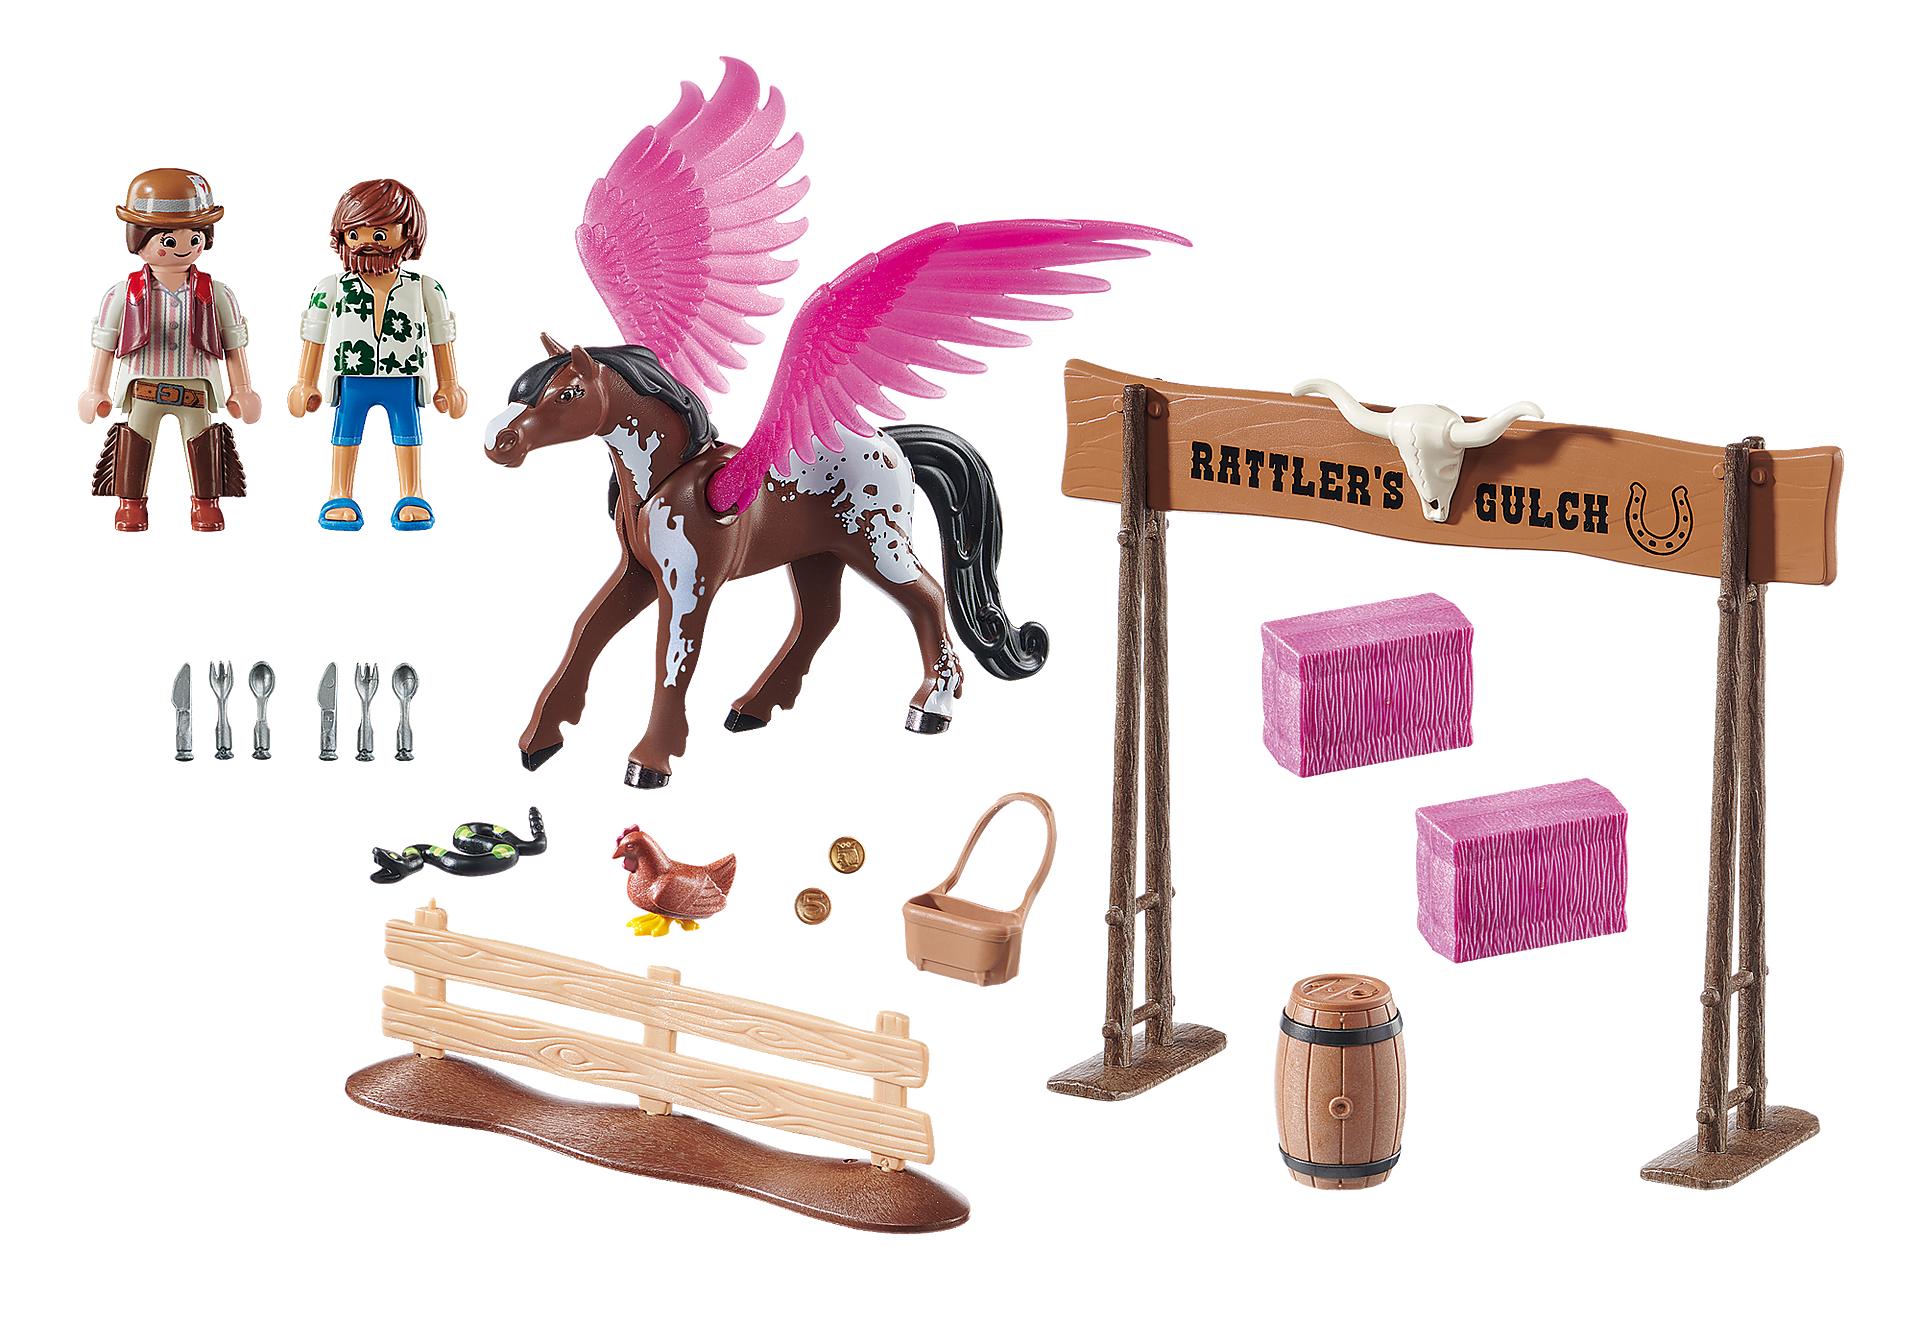 http://media.playmobil.com/i/playmobil/70074_product_box_back/PLAYMOBIL: THE MOVIE Marla, Del e Cavalo com Asas